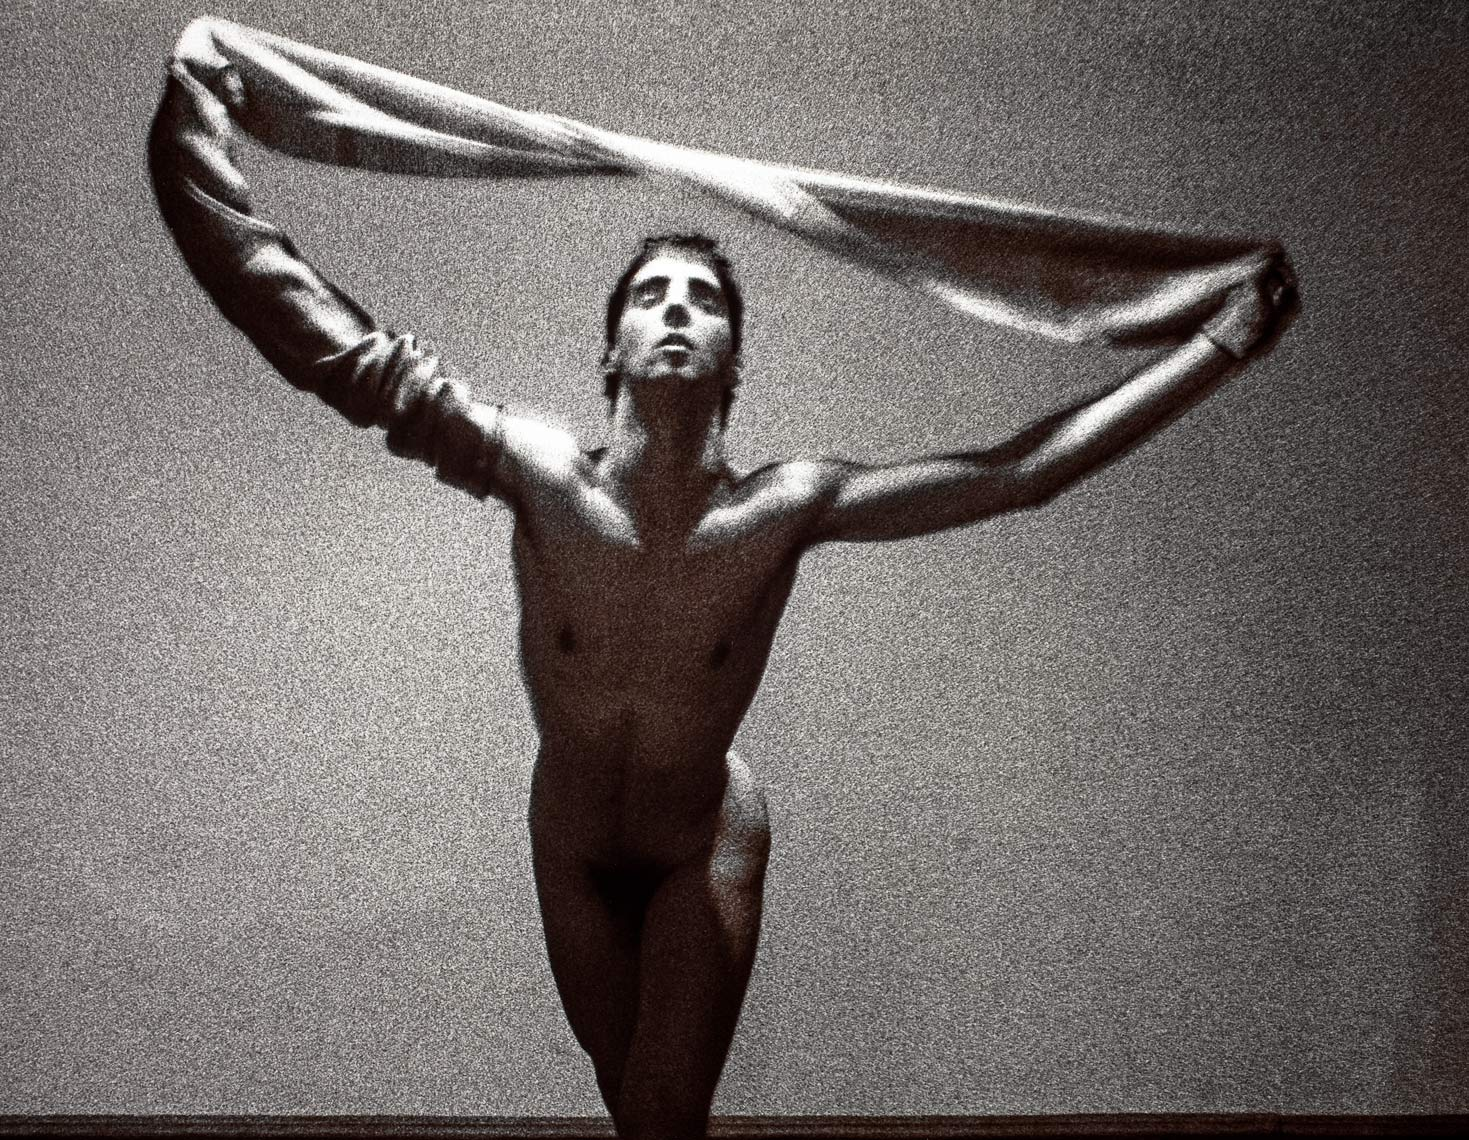 David Lebe; Scarf, v2, 1983, male nude, black and white photograph